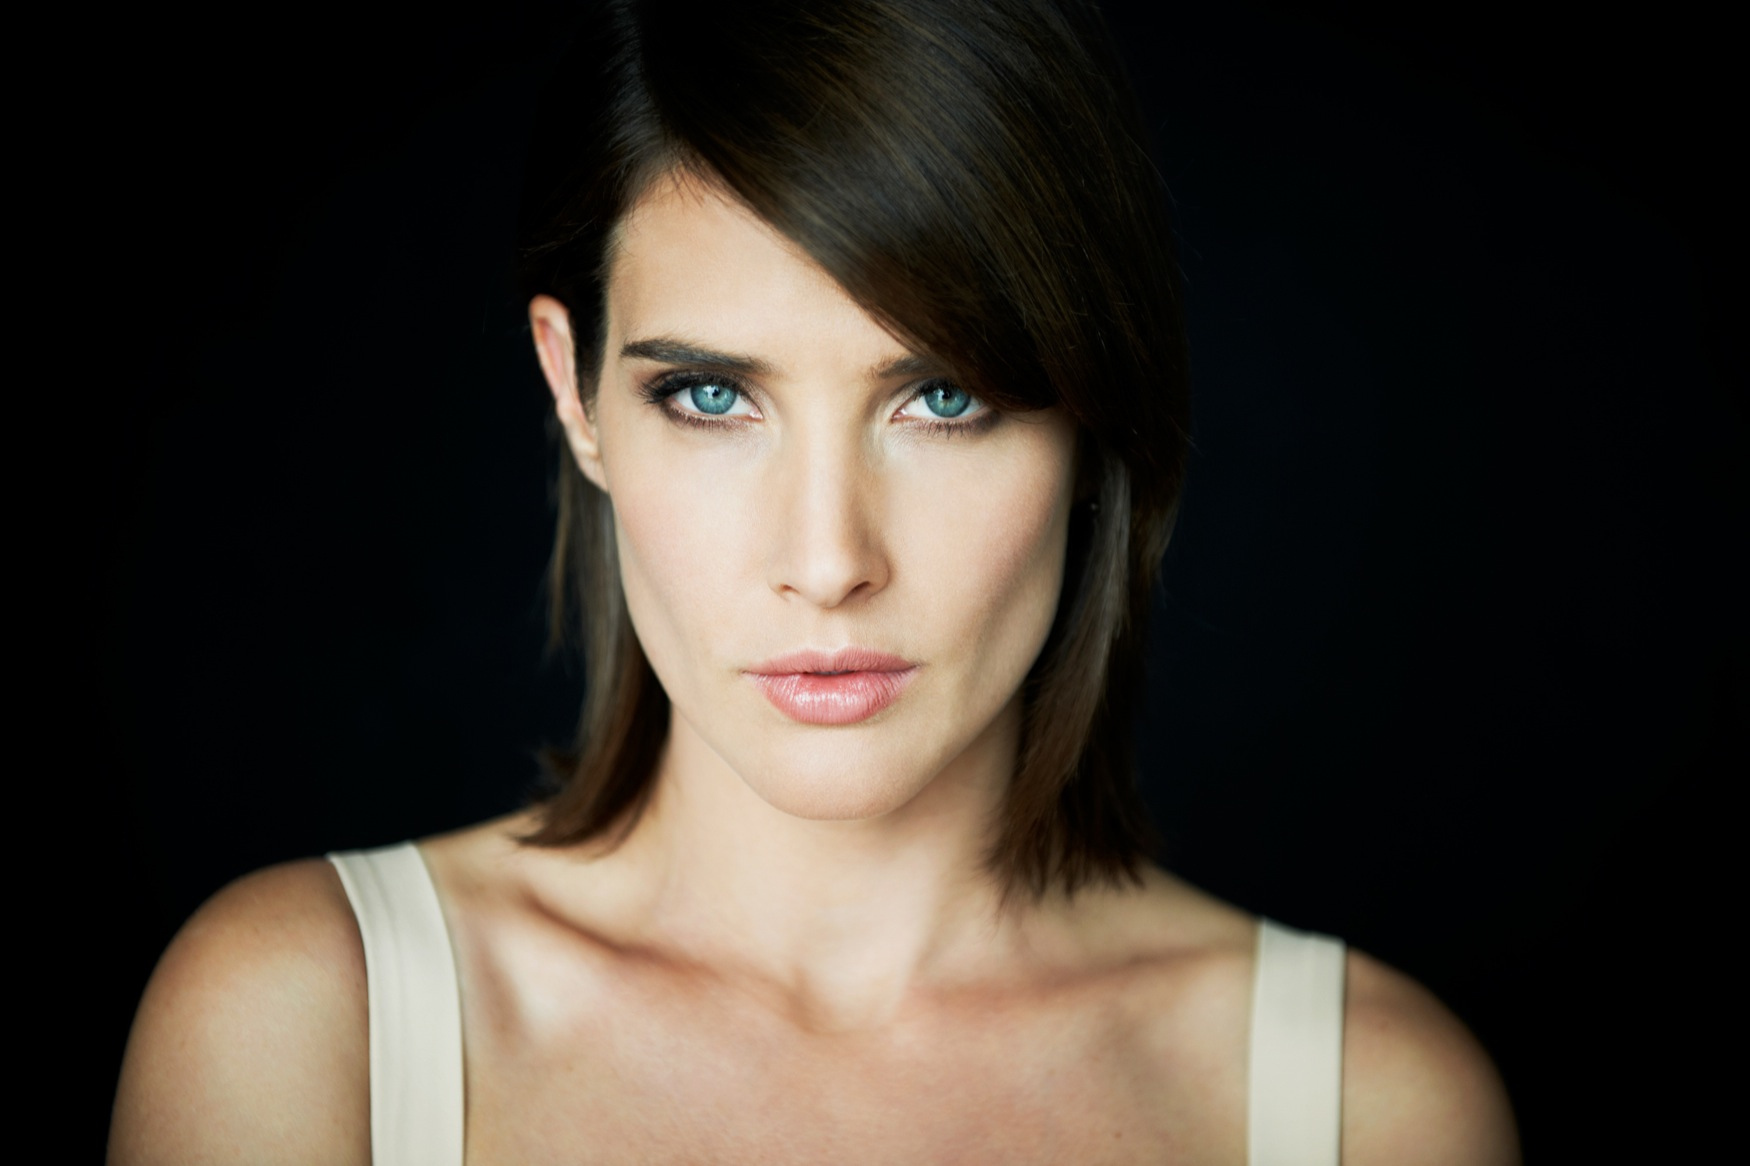 cobie smulders wallpapers hd free download